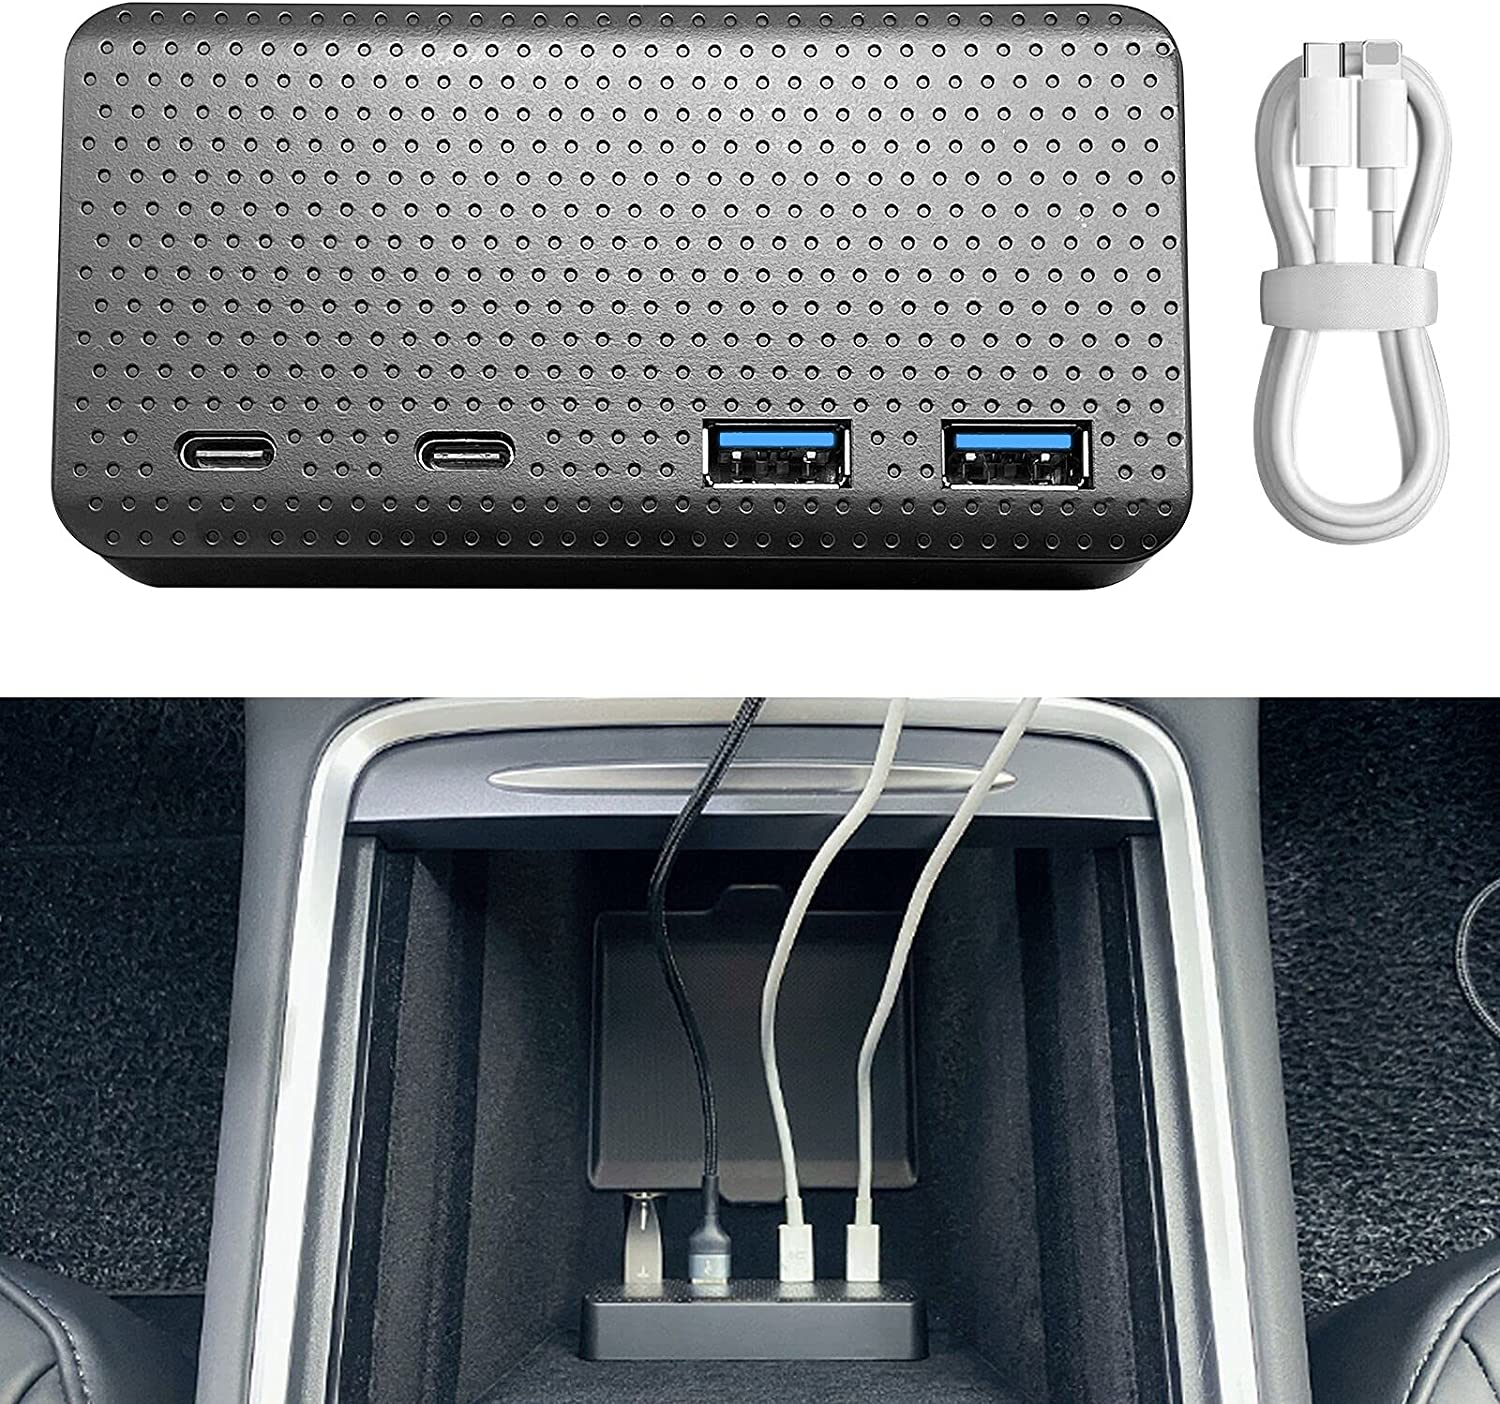 SUMK 2021 Tesla Model 3/Y 4-Port USB Hub Center Console Adapter, Model 3 Model Y Accessories Game & Boombox Music USB Hub 4 in 1 Ports 2021 Upgrade for Refreshed 2021 Model 3/Y